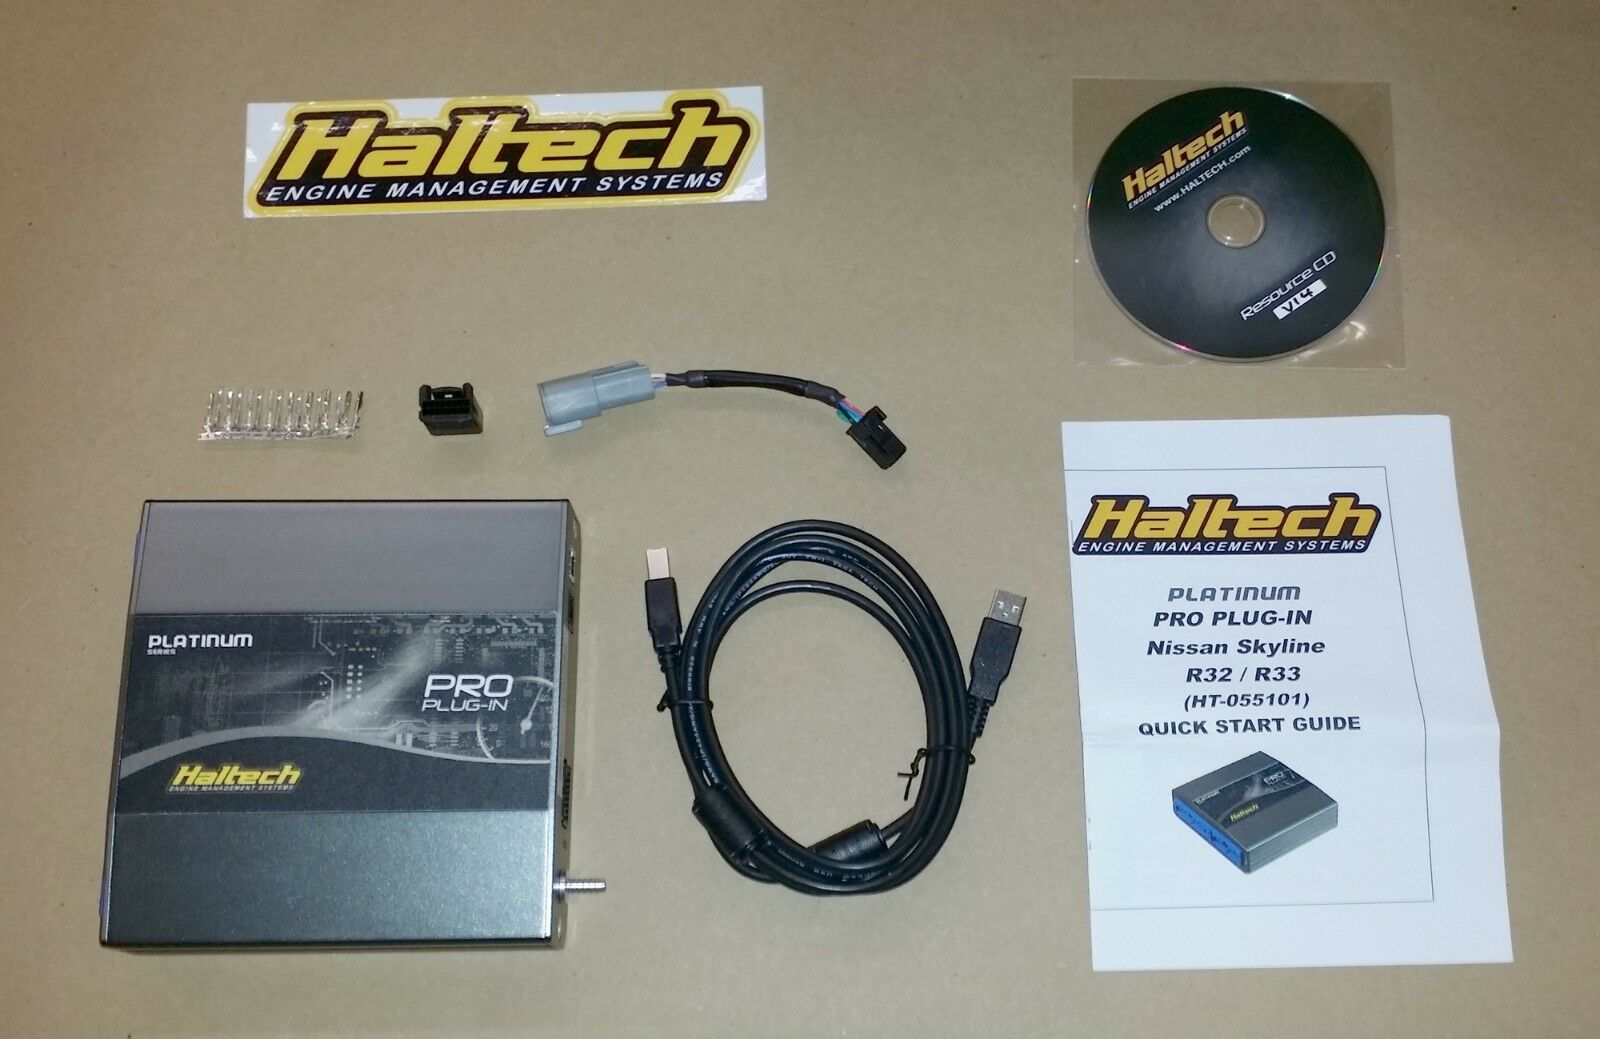 Haltech Ht055101 Platinum Pro Plug In Ecu For Nissan Rb20 Rb25 Rb26 Wiring Harness 1 Of 4 See More